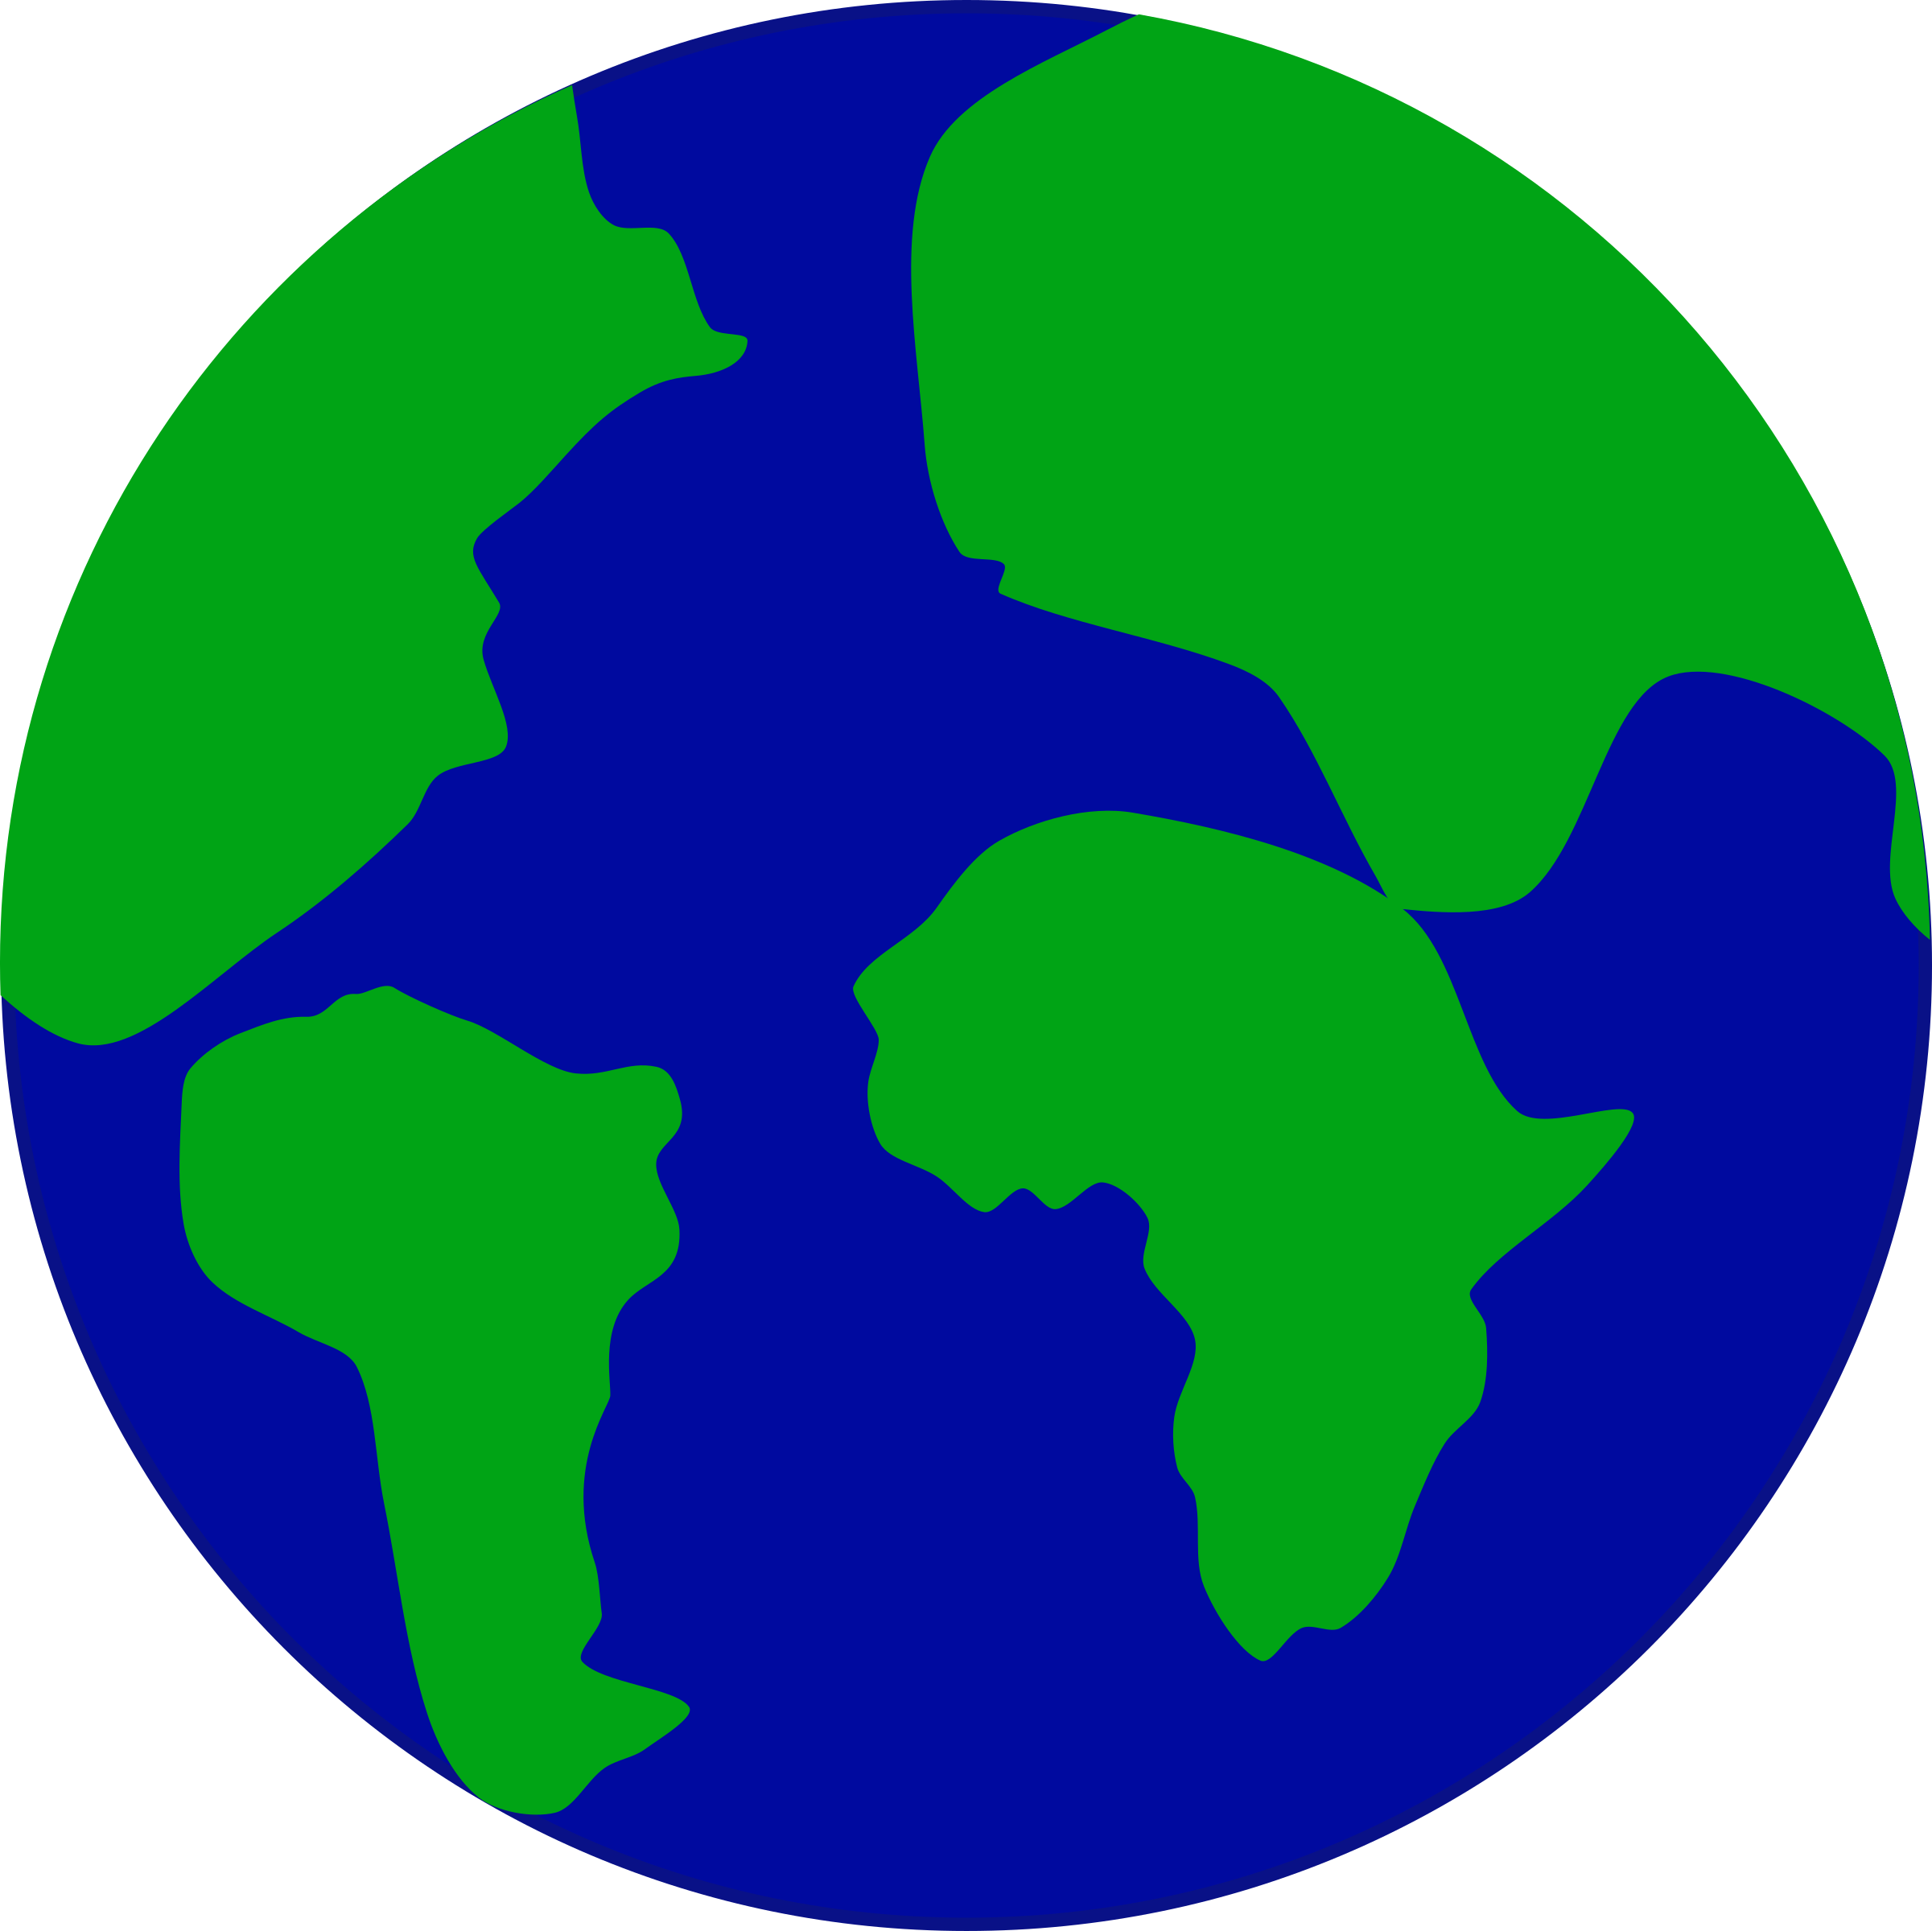 Heaven clipart drawing earth. With continents separated big